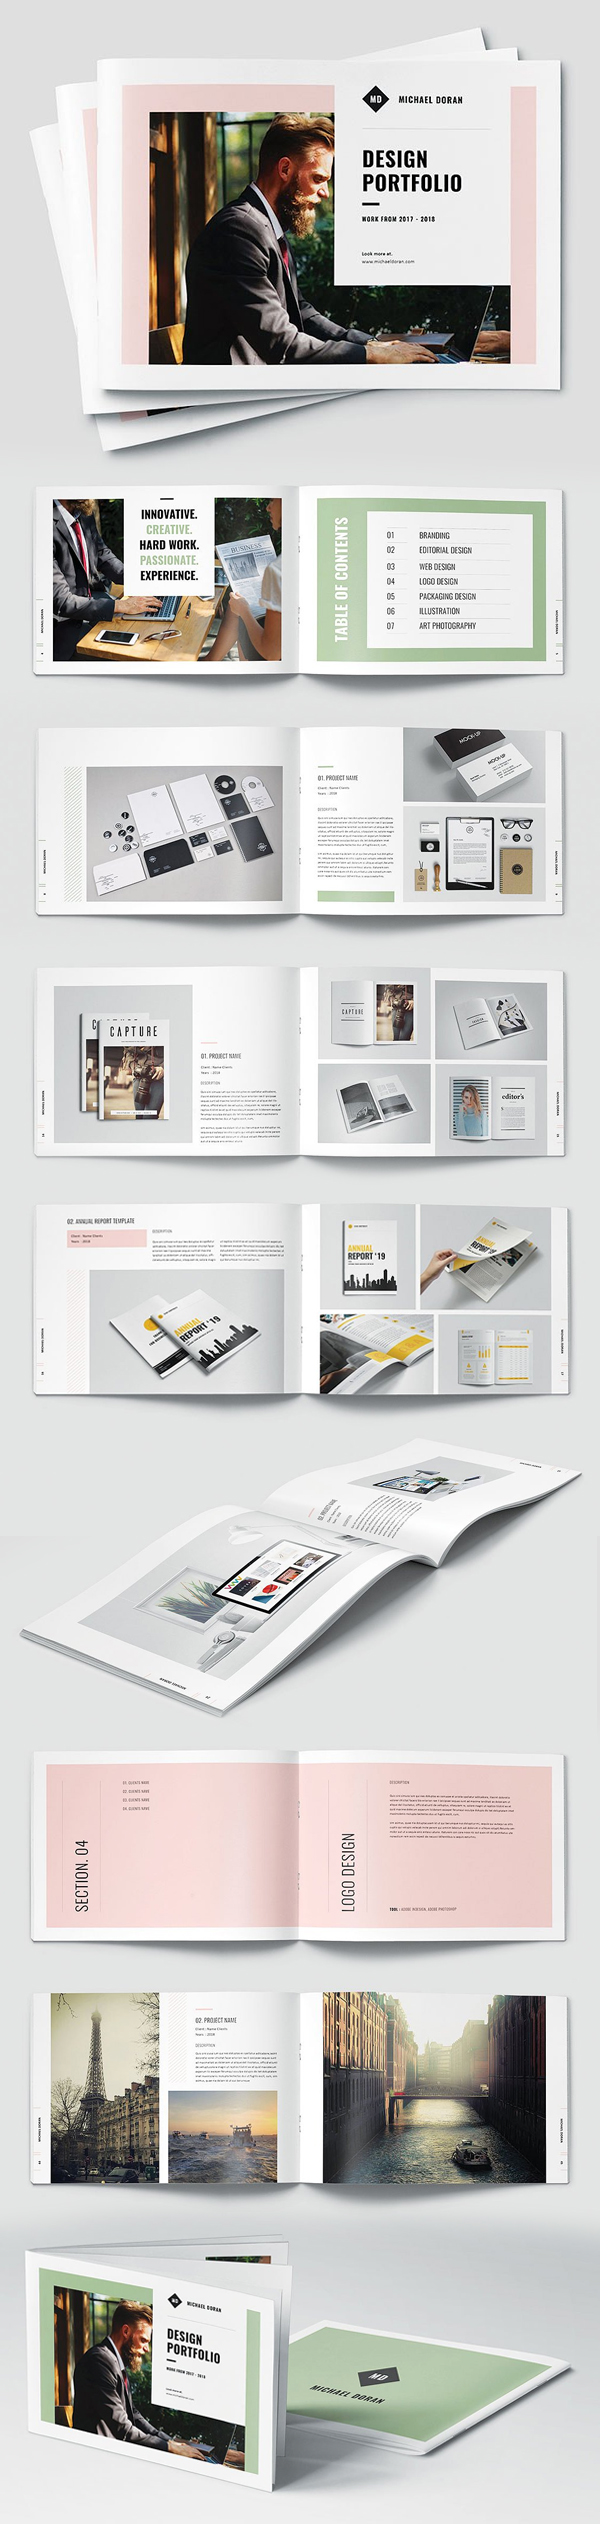 20 New Professional Catalog Brochure Templates Design Graphic Design Junction,Hire Interior Designer Student